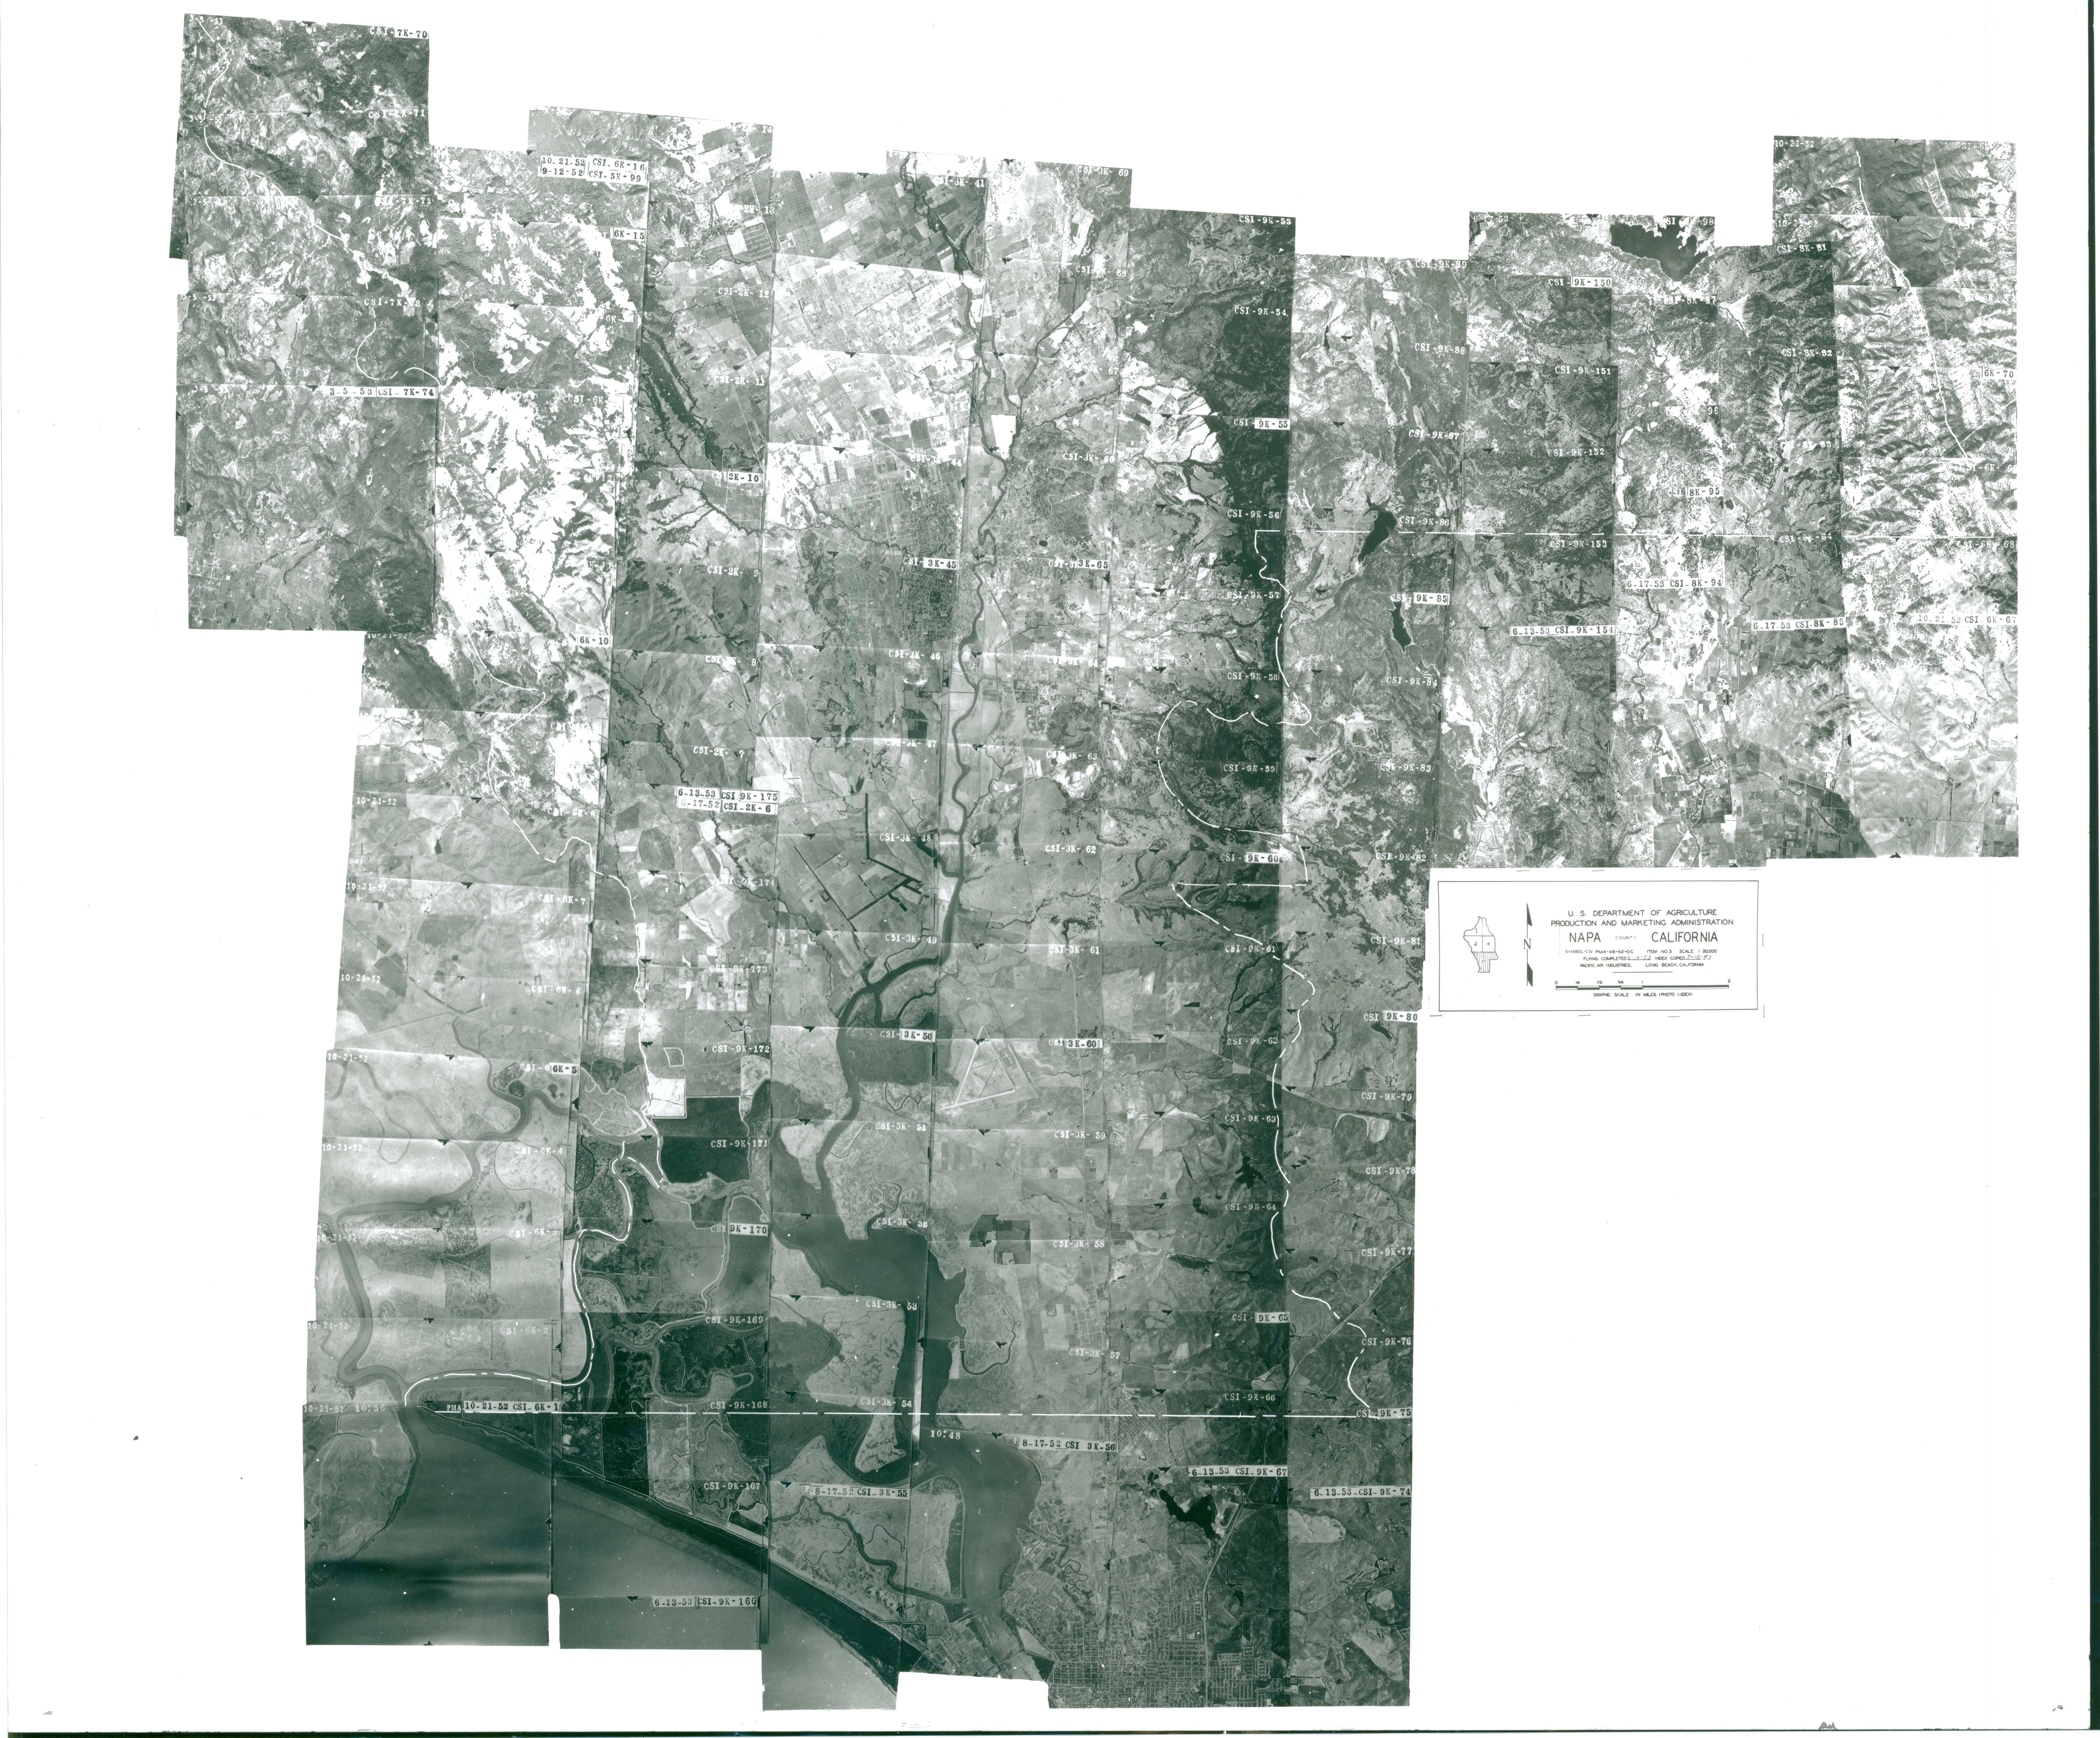 Aerial Photography Index for Napa County, California, Sheet 5